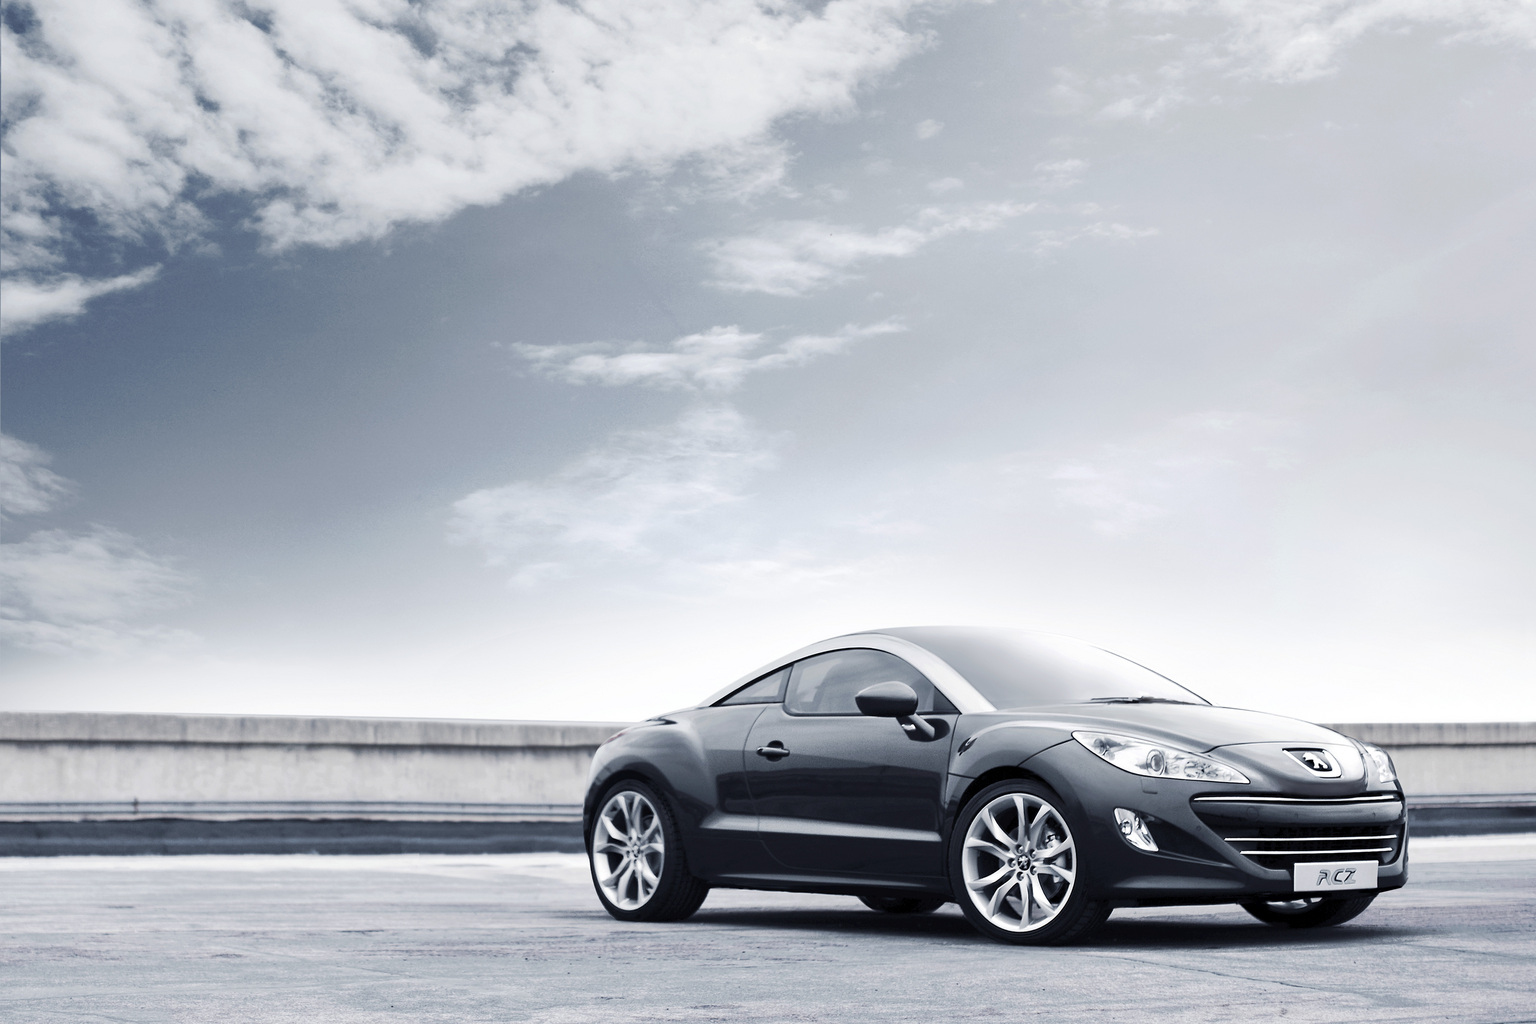 peugeot rcz auto wallpapers. Black Bedroom Furniture Sets. Home Design Ideas